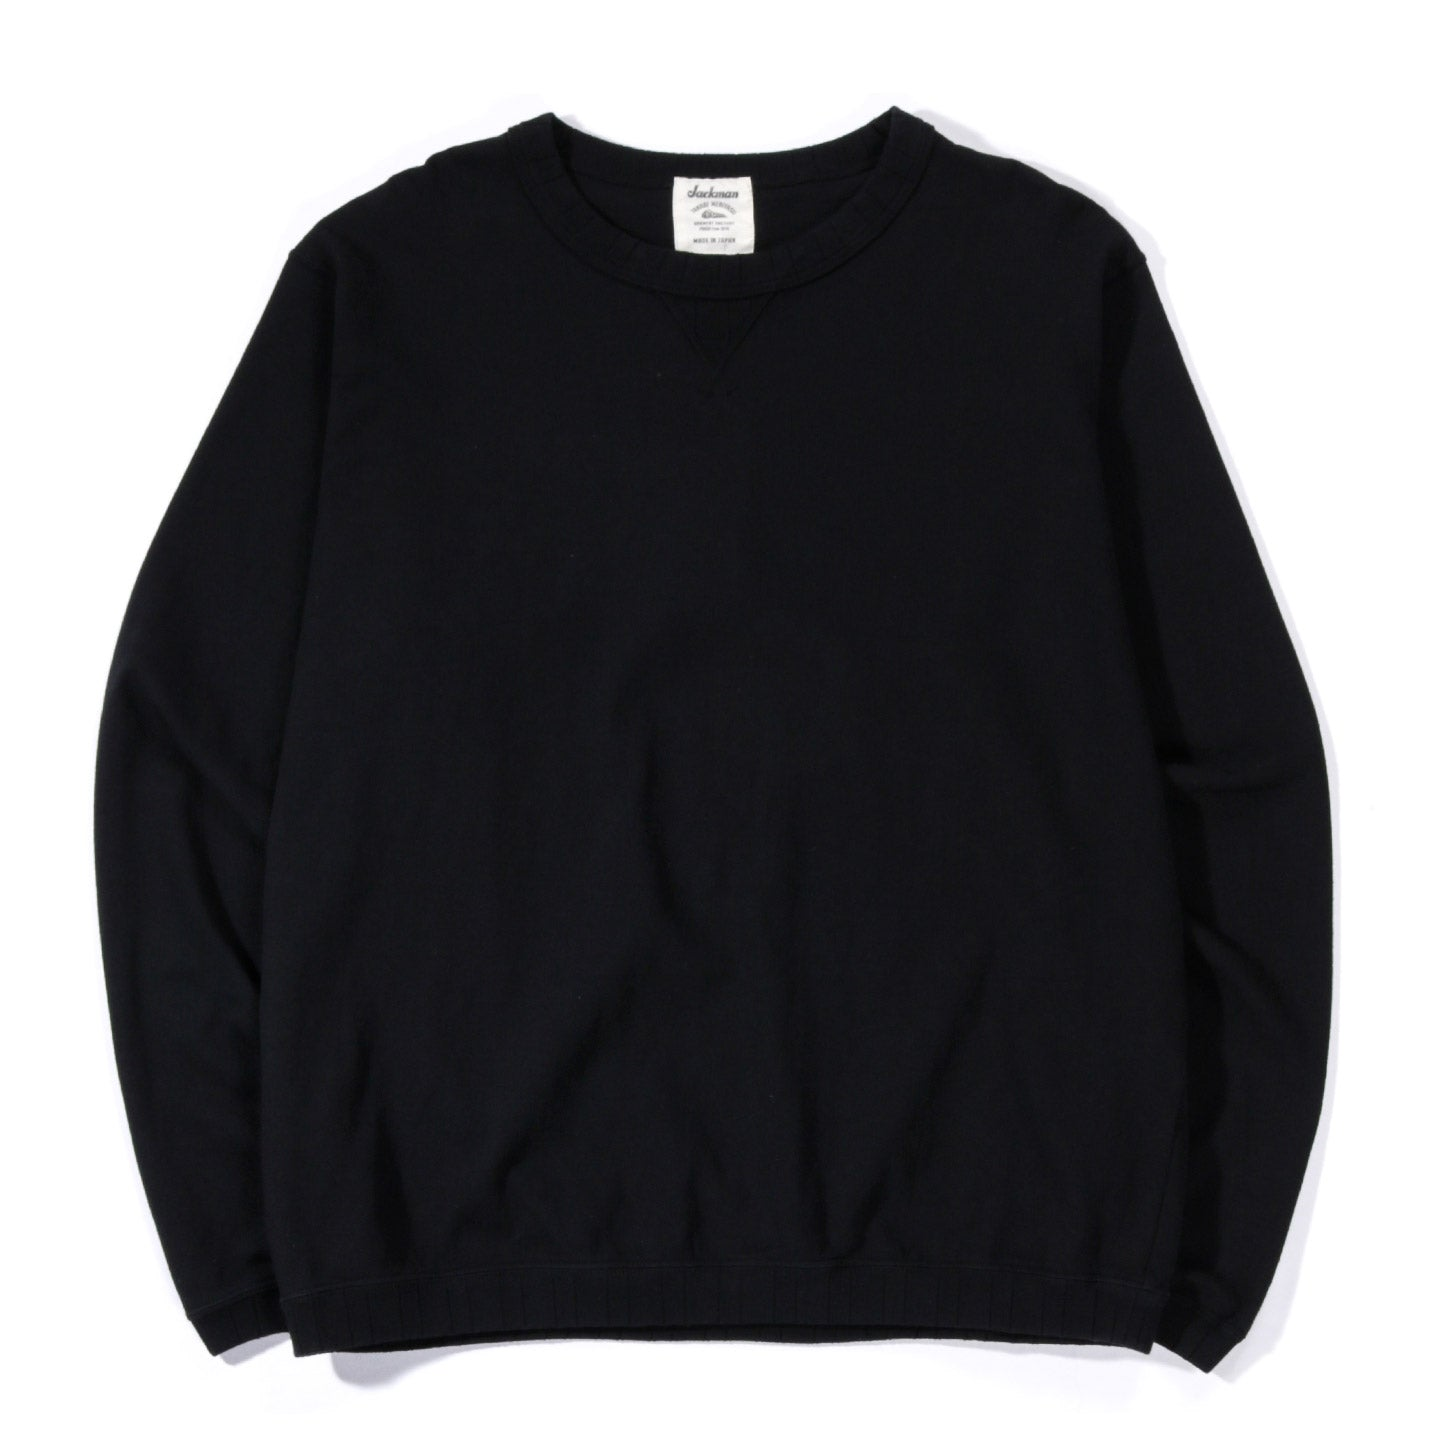 JACKMAN RIB LONG SLEEVE T-SHIRT BLACK